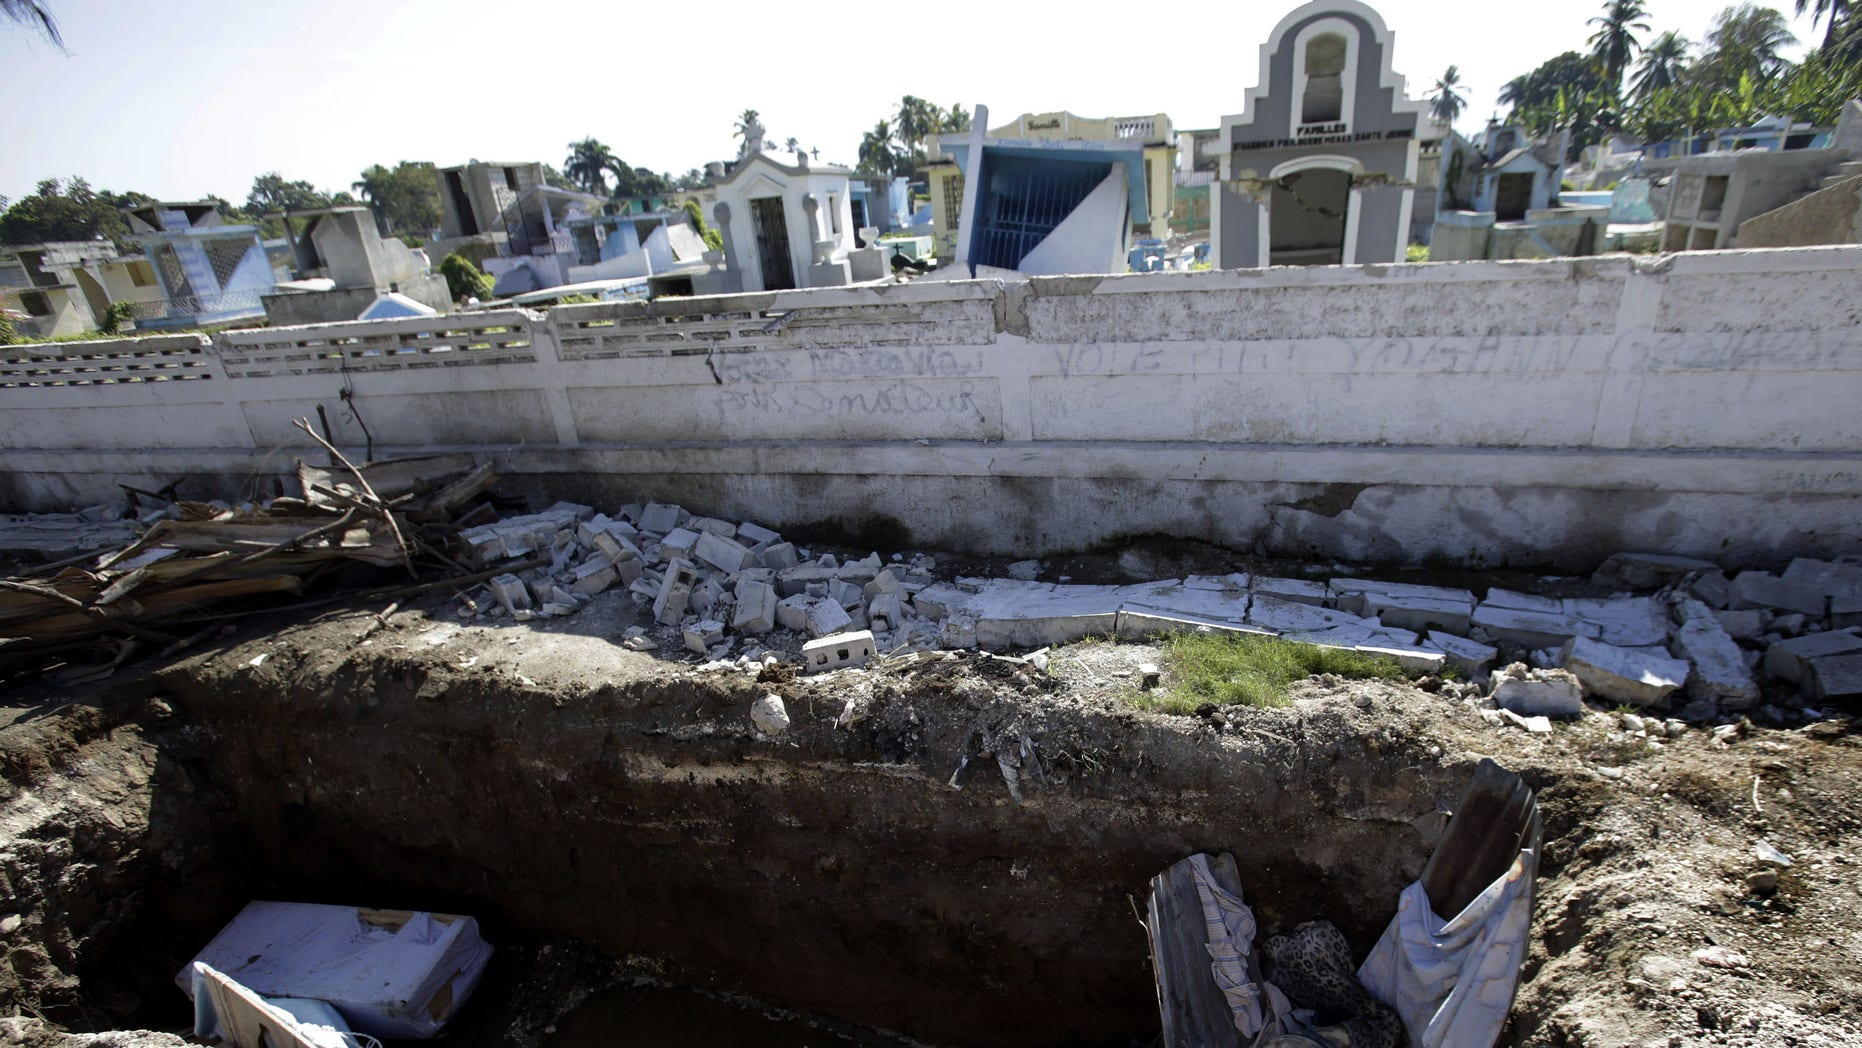 Bodies lie in a mass grave outside a cemetery in Leogane, Haiti, Saturday, Jan. 16, 2010. While workers are burying in mass graves some of  the tens of thousand people killed in Tuesday's powerful earthquake, countless bodies remain unclaimed in the streets. (AP Photo/Lynne Sladky)